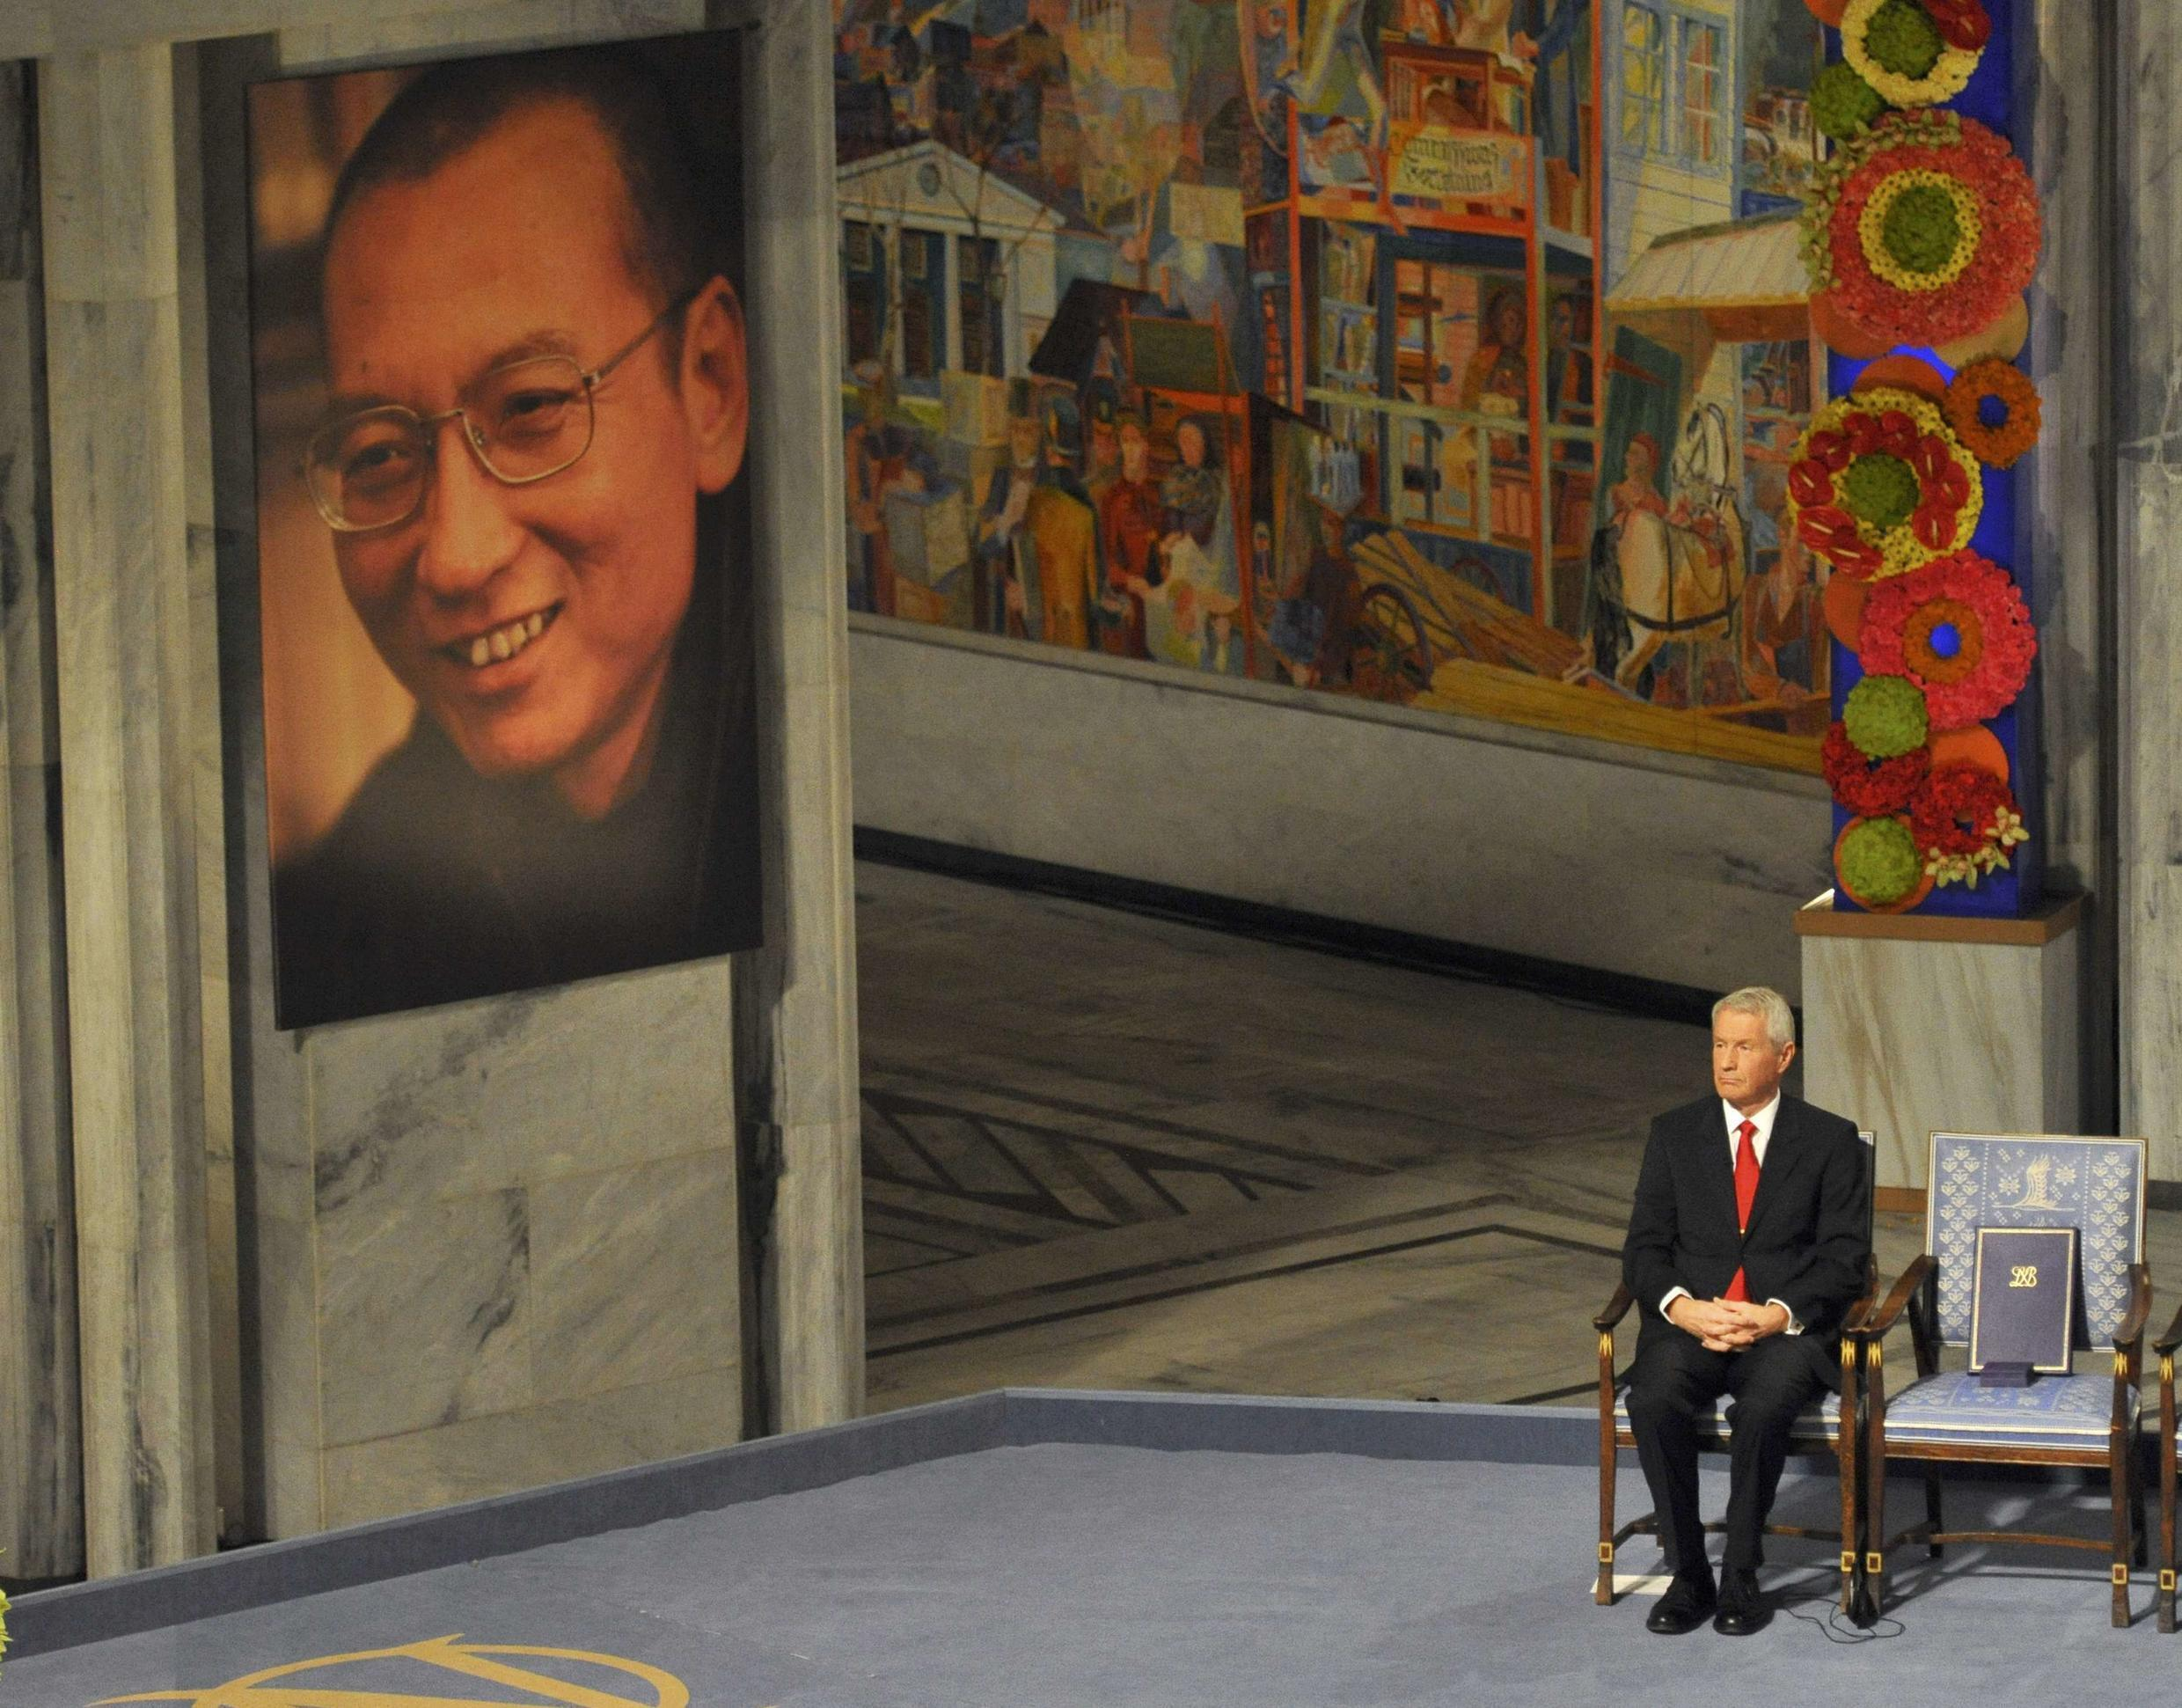 Nobel committee chair Thorbjorn Jagland next to the empty chair left for Liu Xiaobo